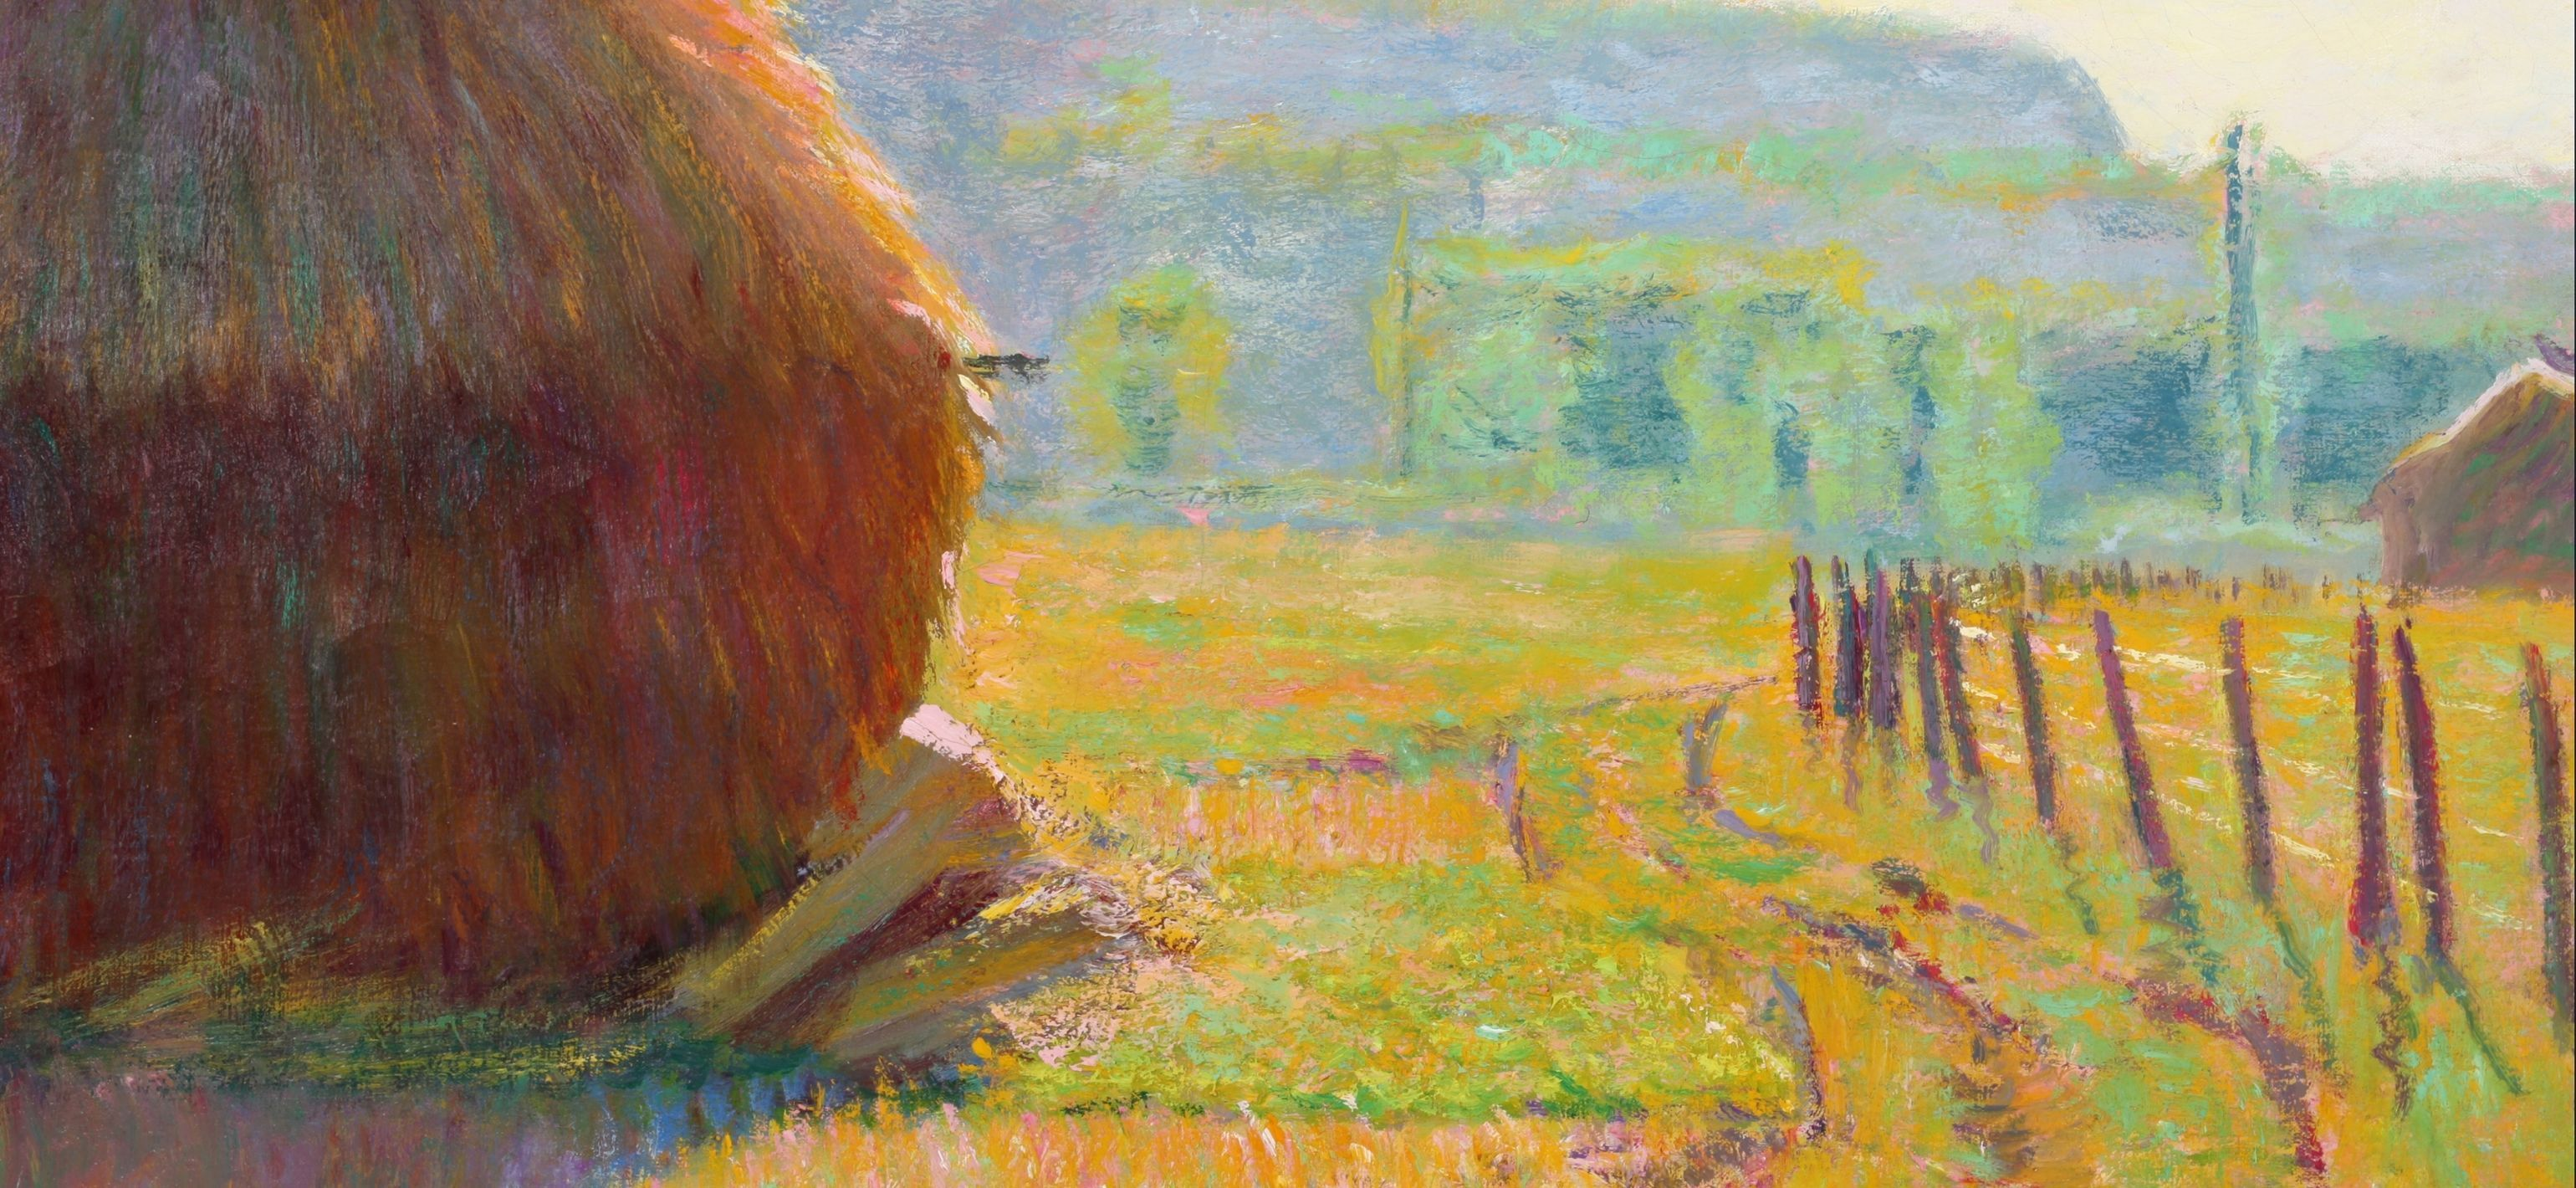 Detail of a painting: Theodore Earl Butler, Grainstacks, Giverny